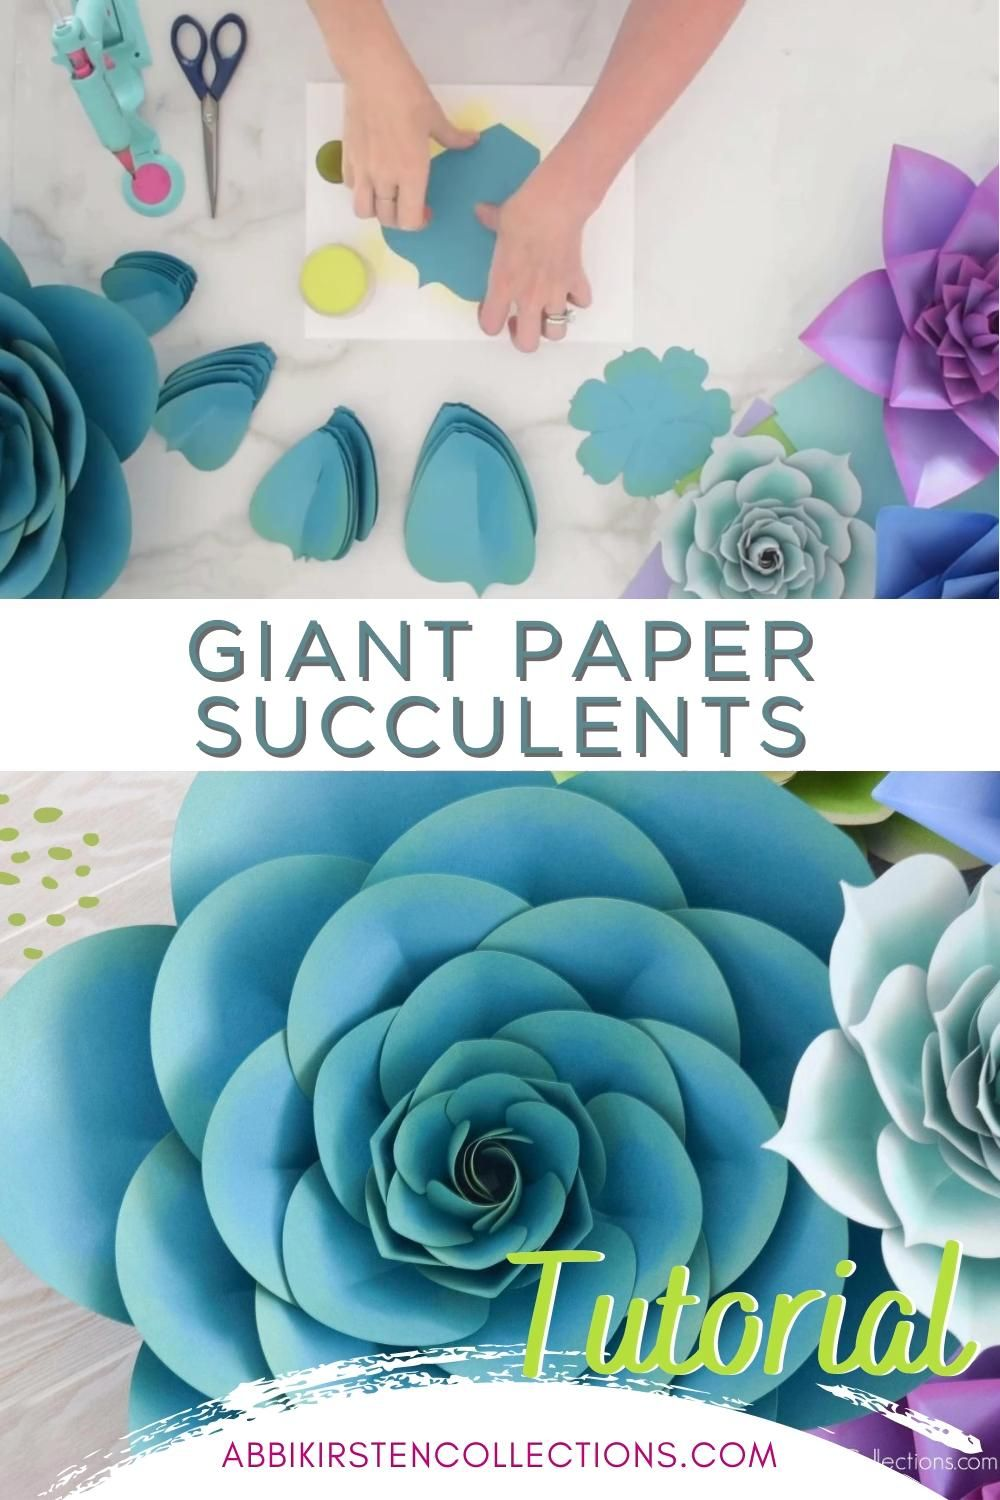 My new giant paper succulent templates come in both printable PDF and SVG cut files so you can easily hand-cut